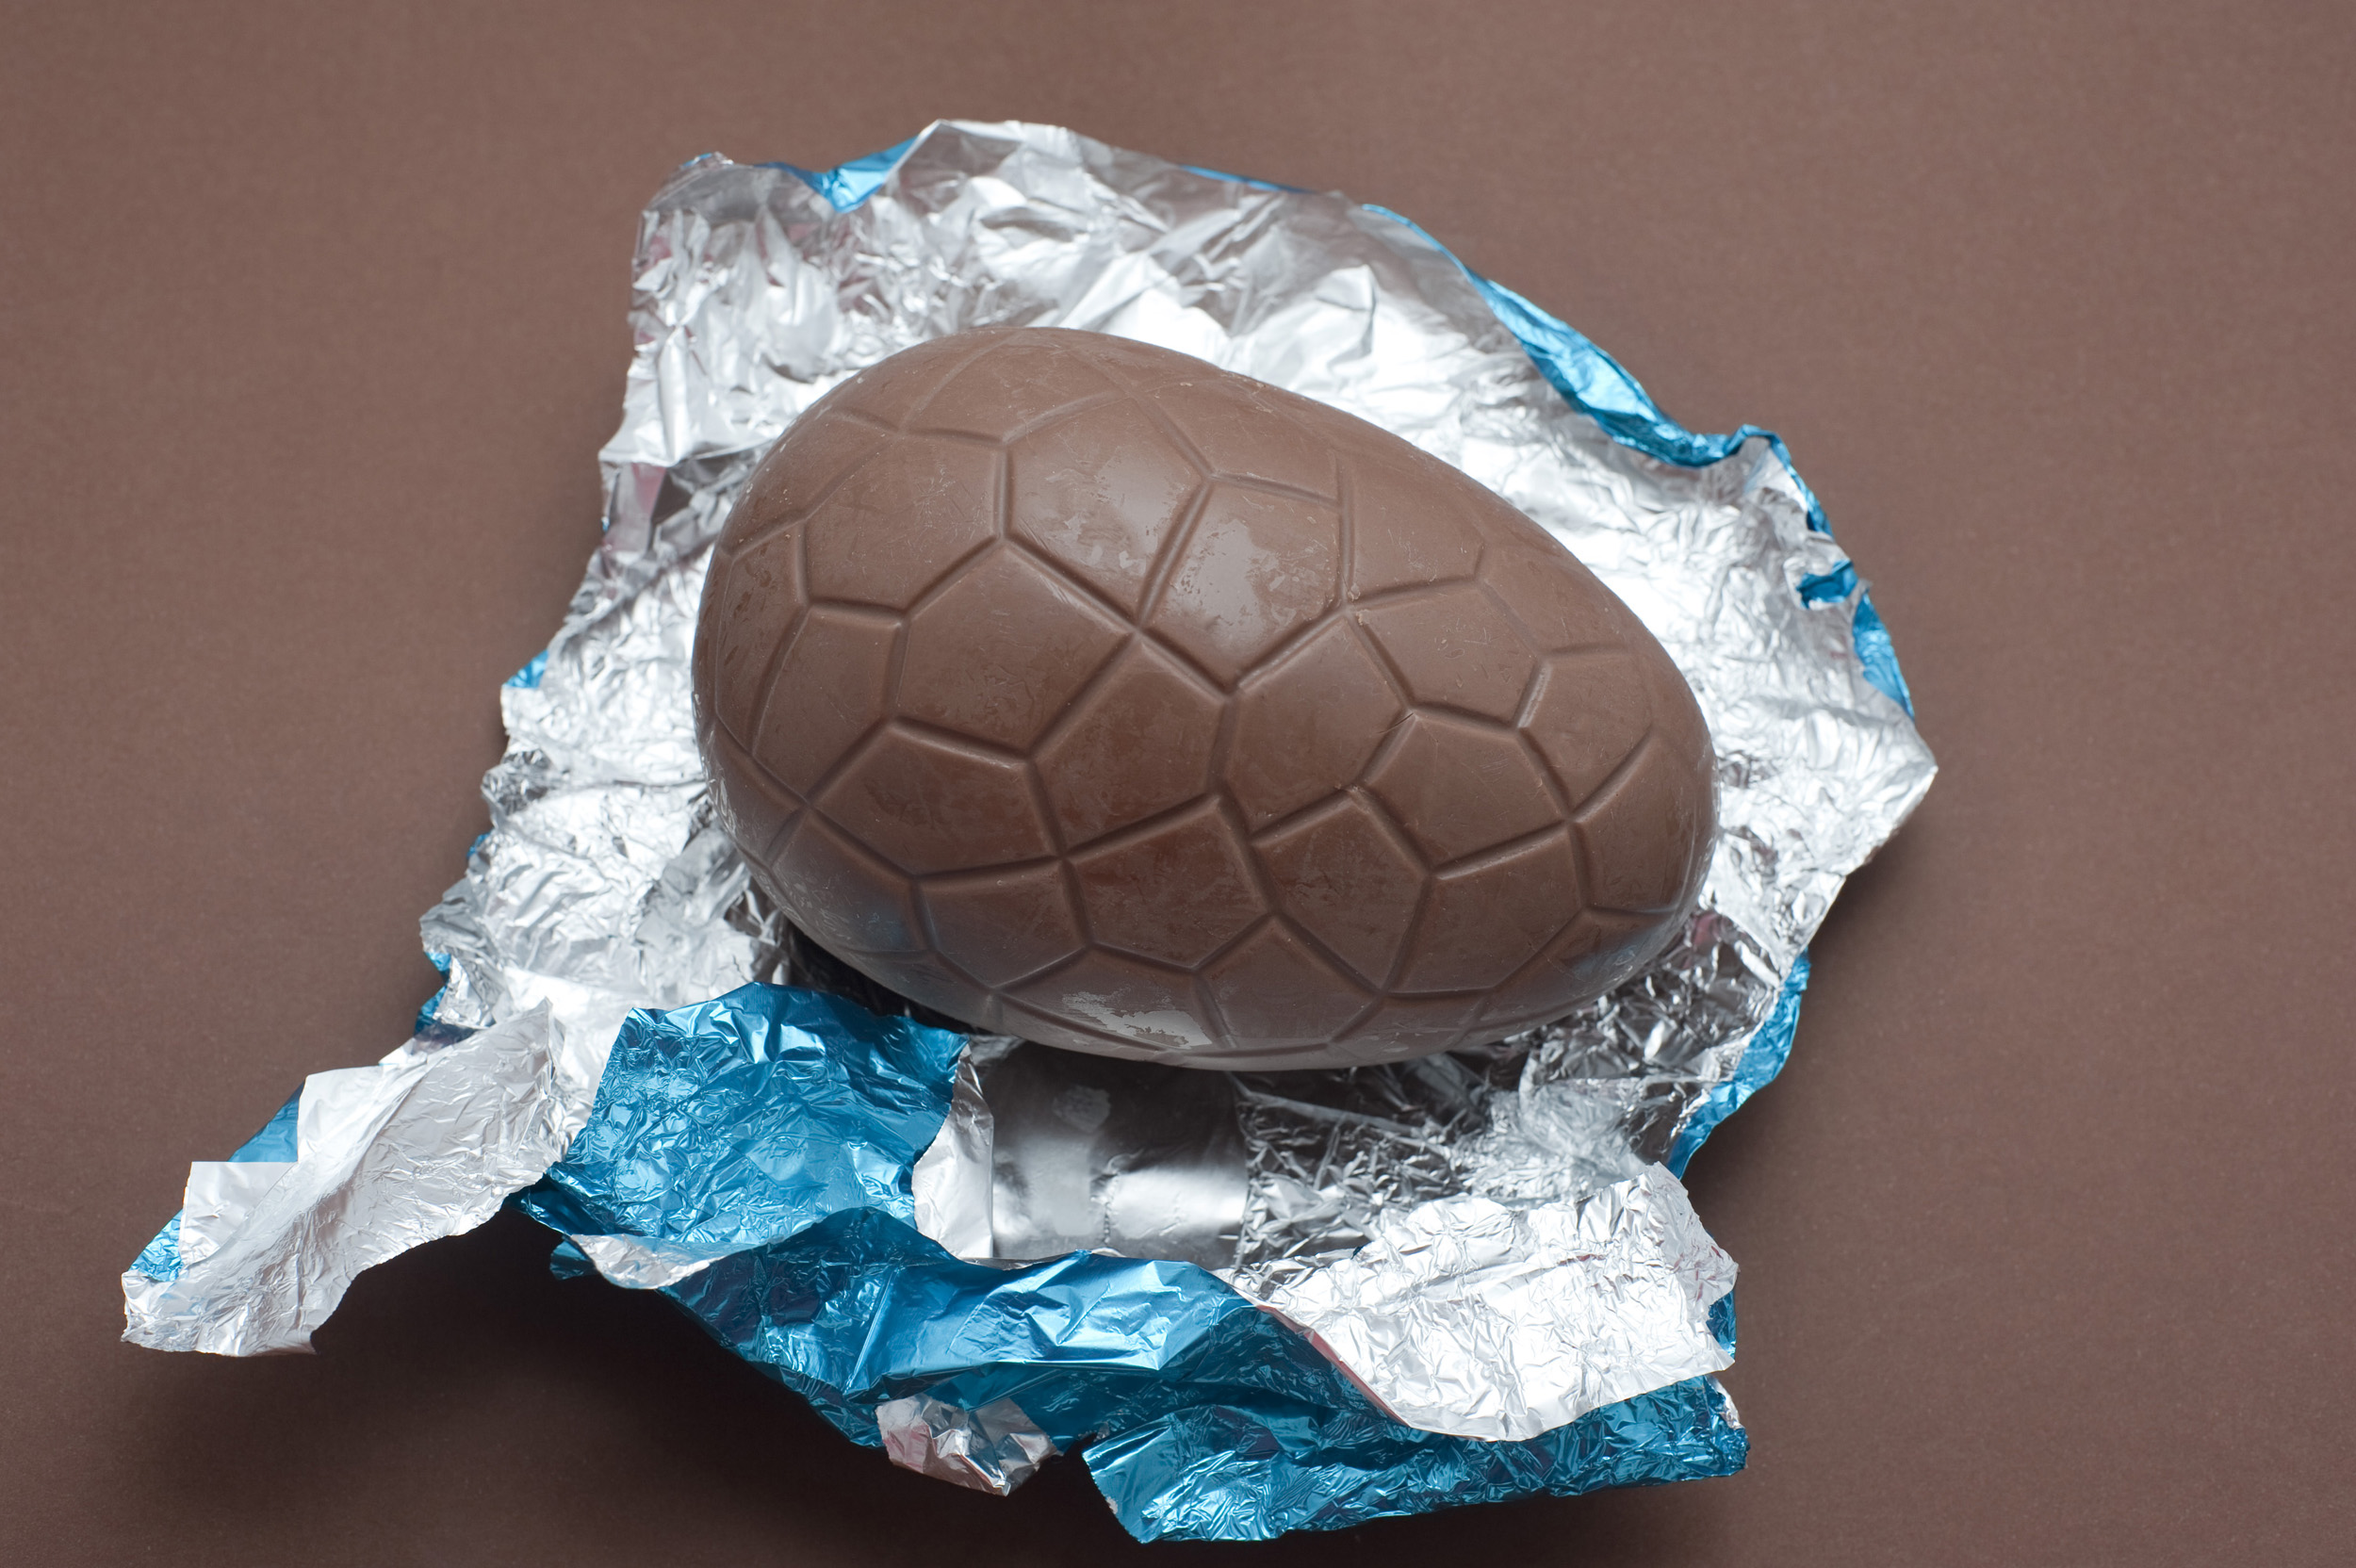 chocolate_egg.jpg - Single unwrapped chocolate Easter Egg sitting on its colourful shiny silver and blue foil wrapper on a brown background